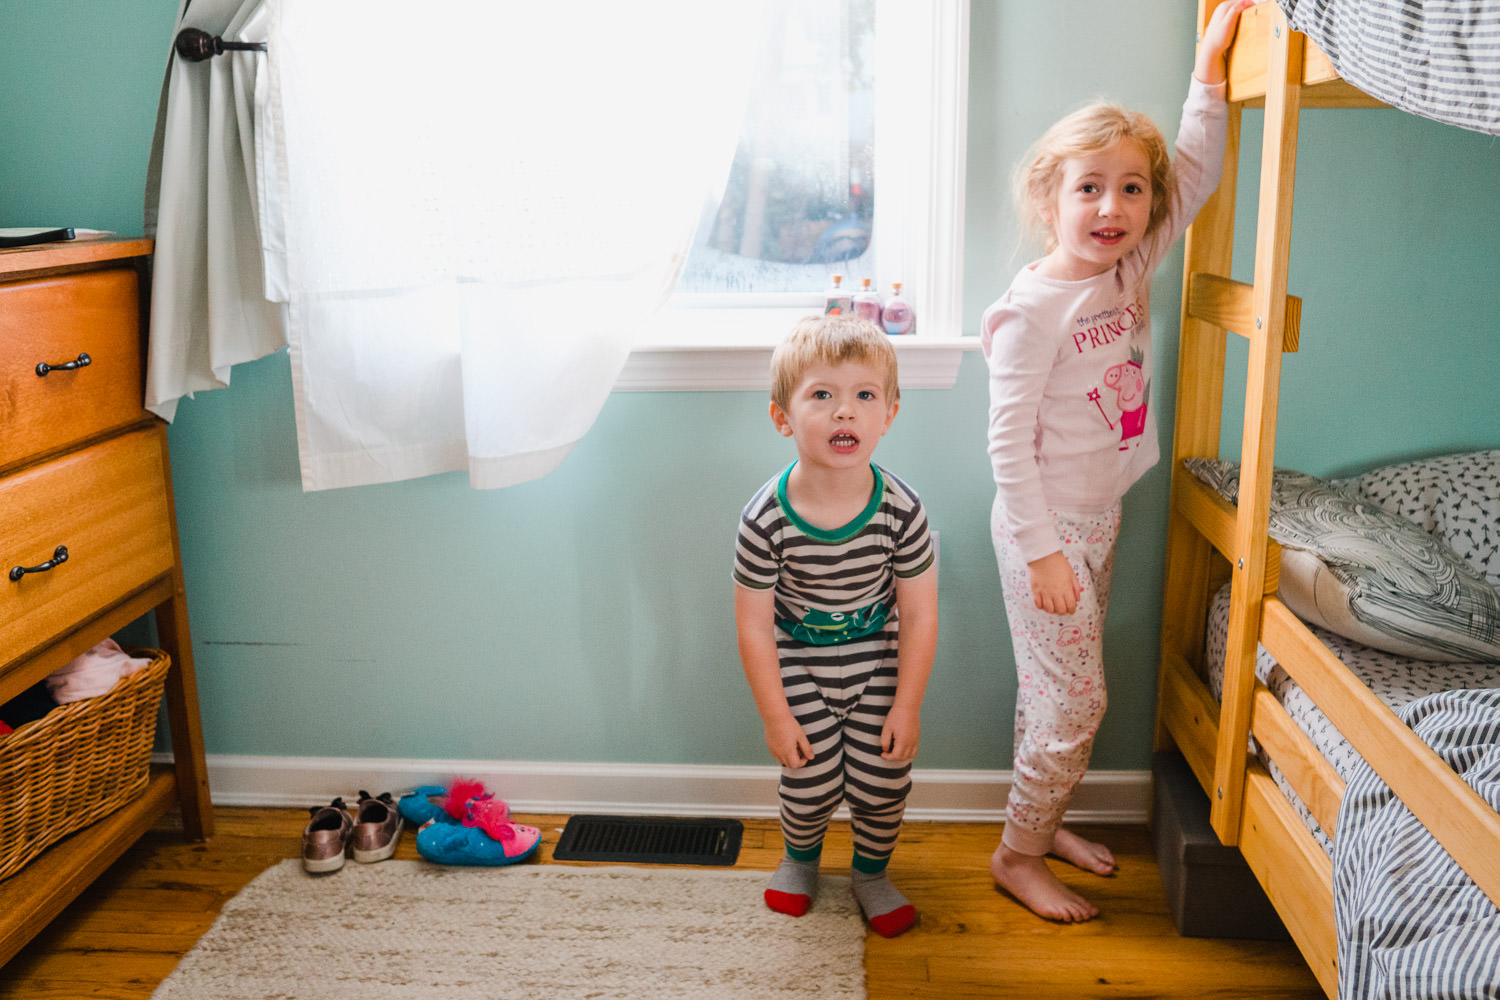 Two young siblings in pajamas stand next to their bunkbed.